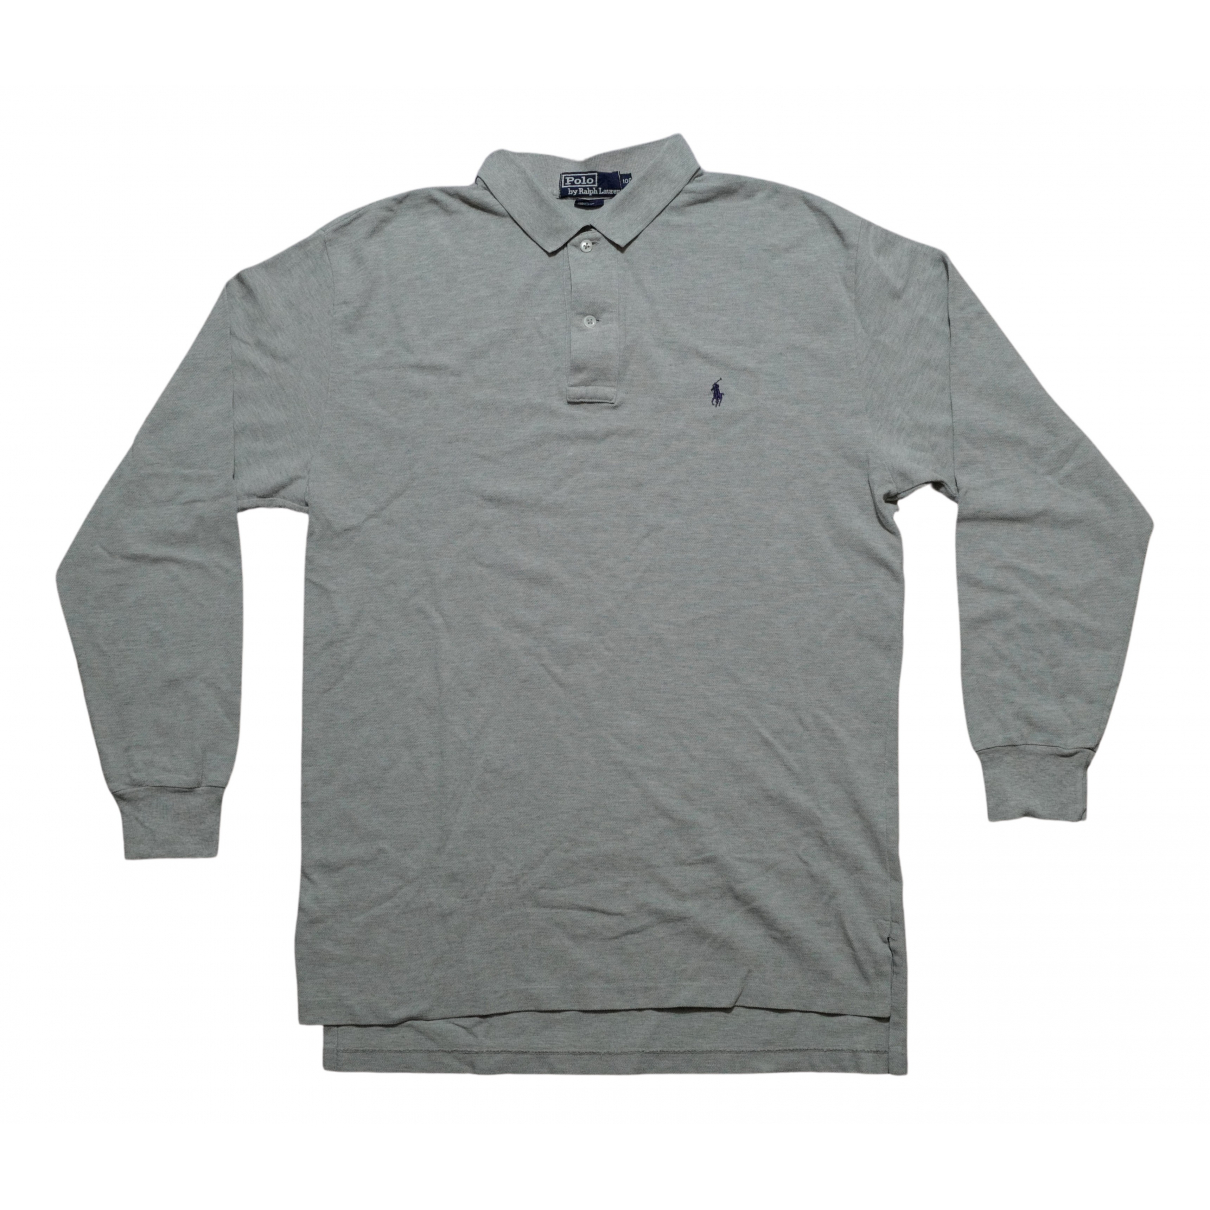 Polo Ralph Lauren Polo classique manches longues Grey Cotton Polo shirts for Men M International